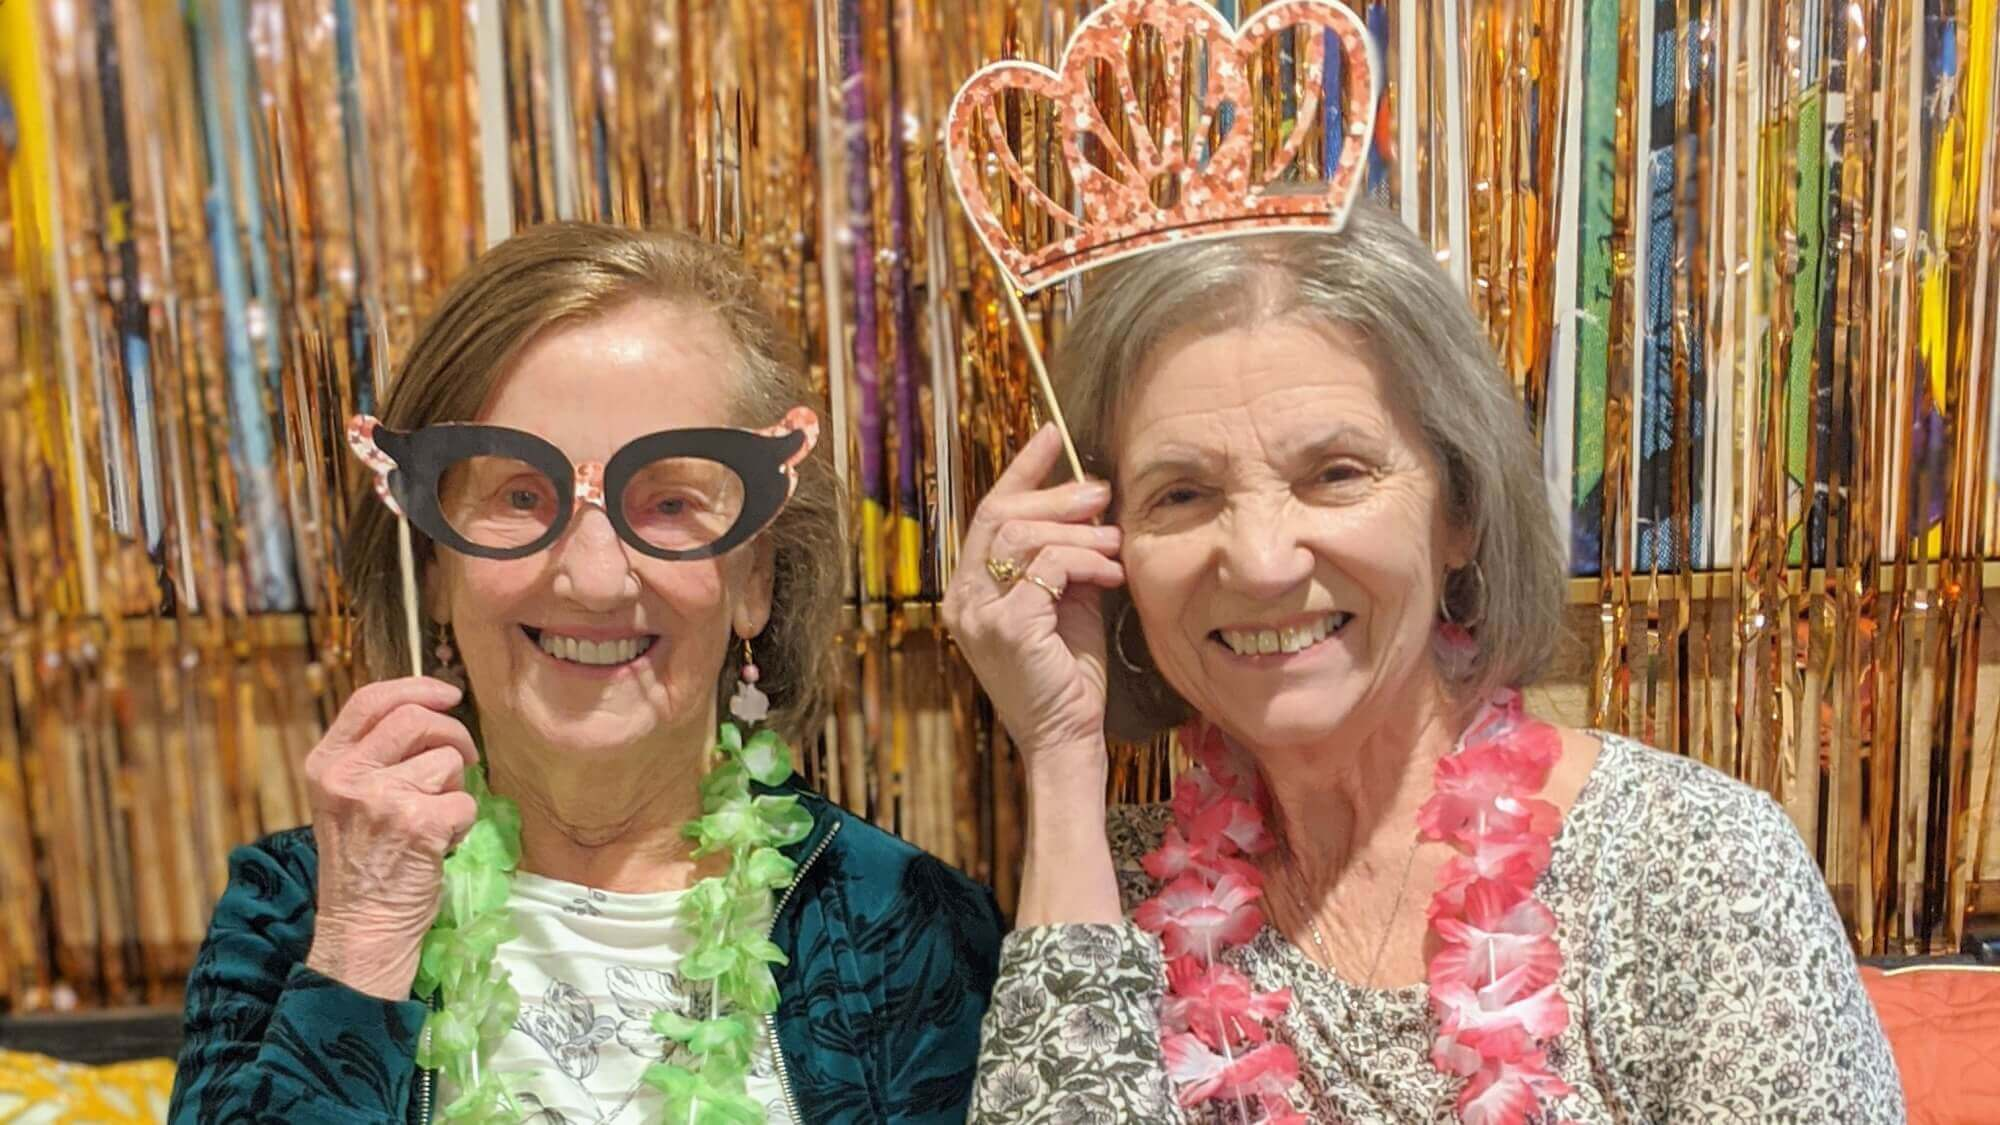 Senior friends having fun with their masks and crowns